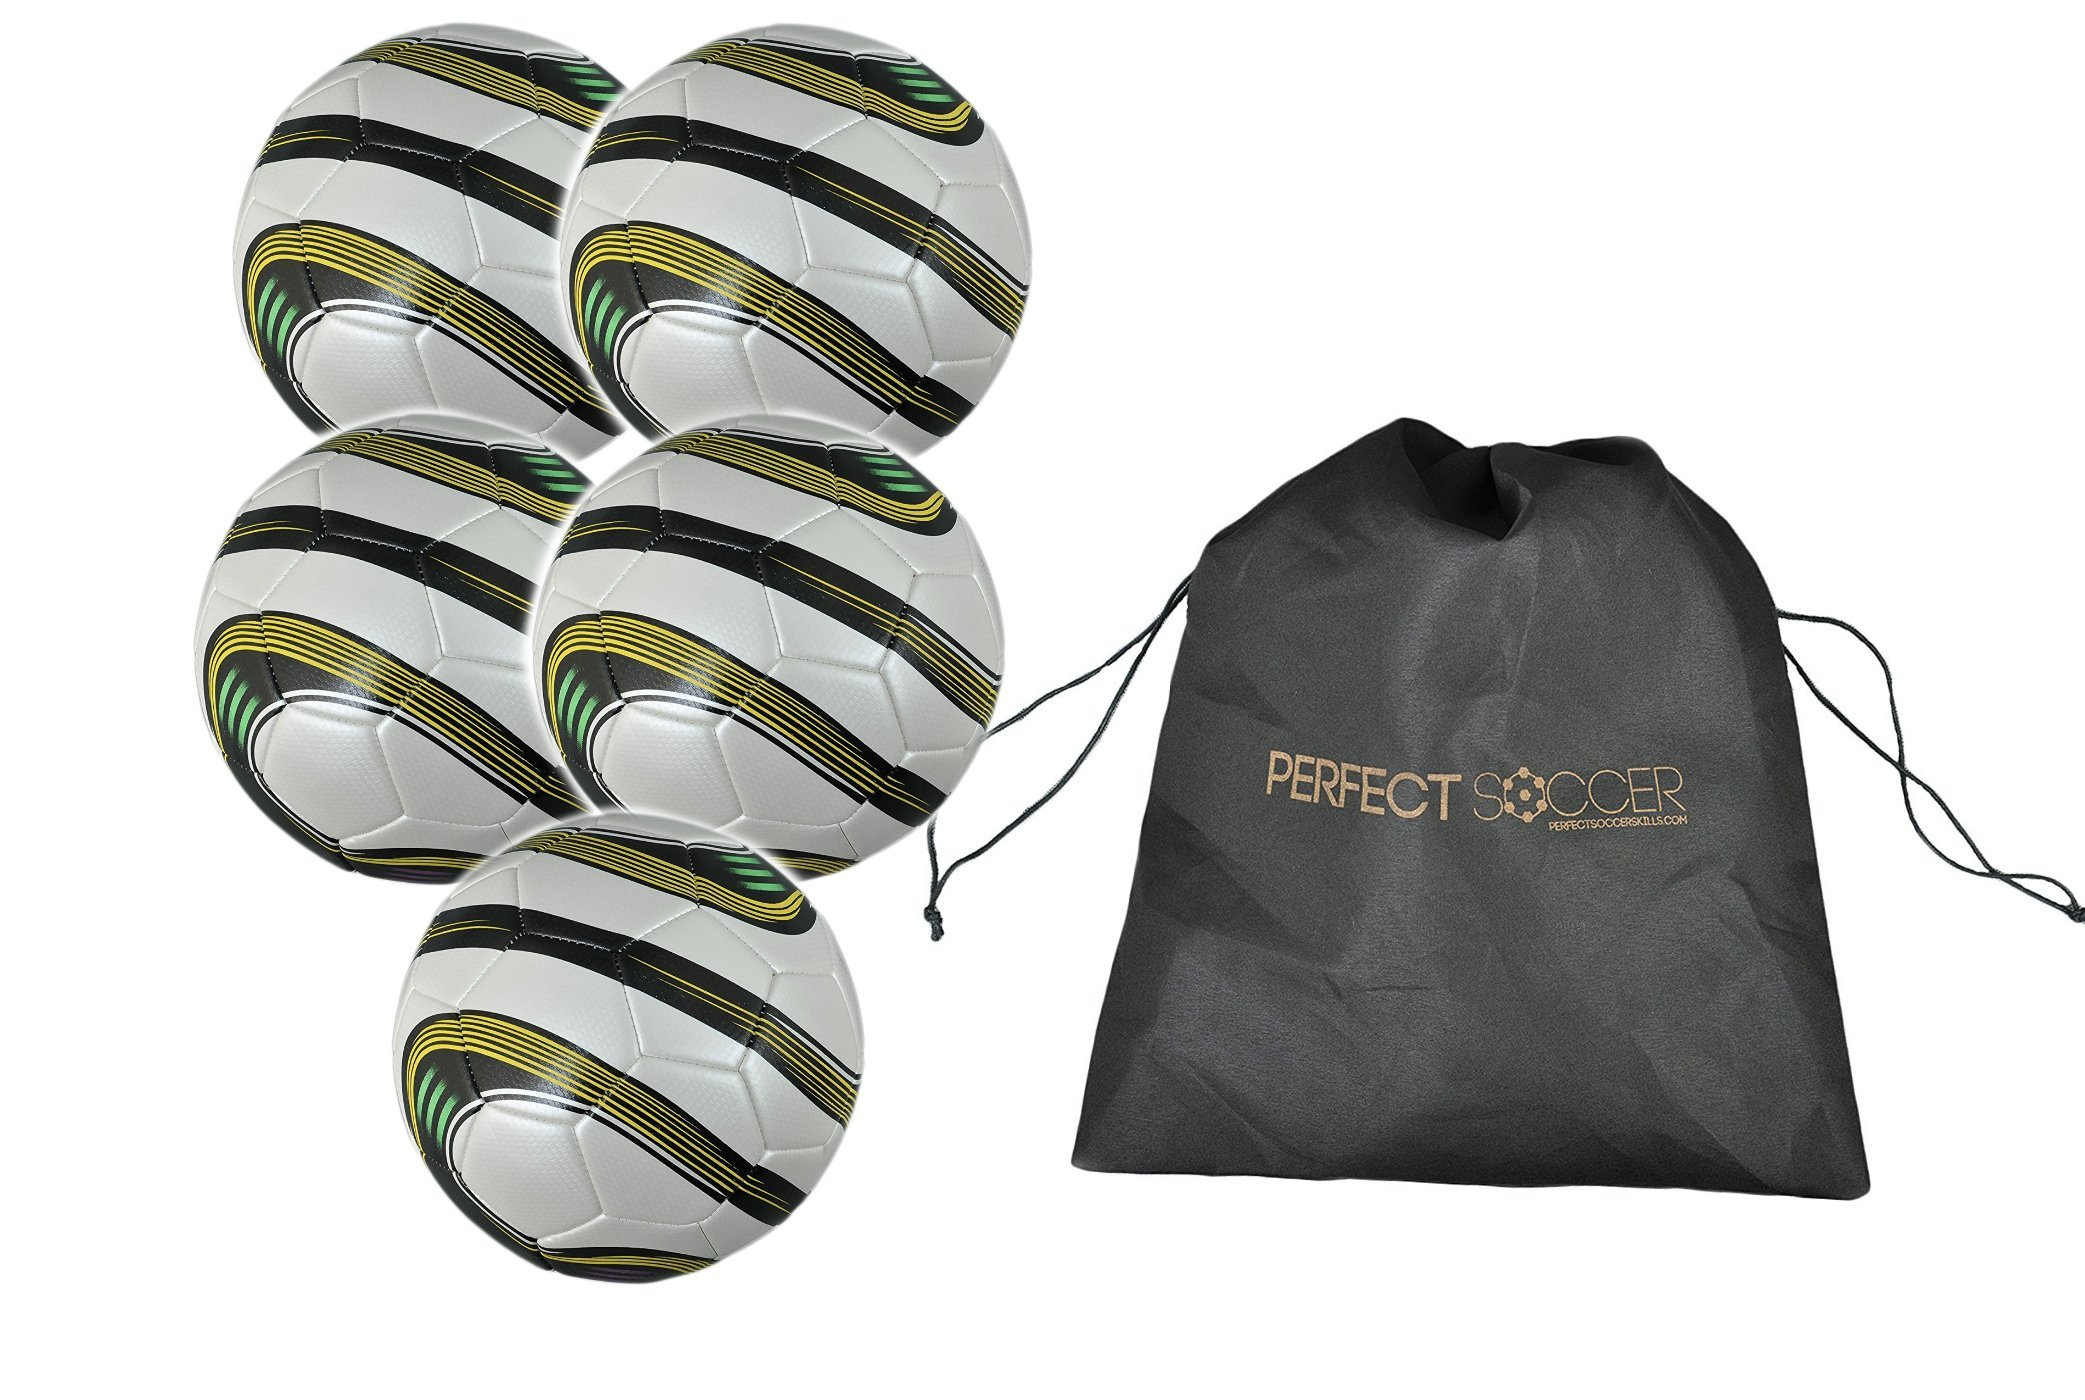 Soccer Training Ball - Premium Adult & Youth Soccer Ball w Free Carrying Bag & - MLS Soccer Player Endorsed - Plus Over $497 in Online Soccer Training Bonuses! (Pack of 5)